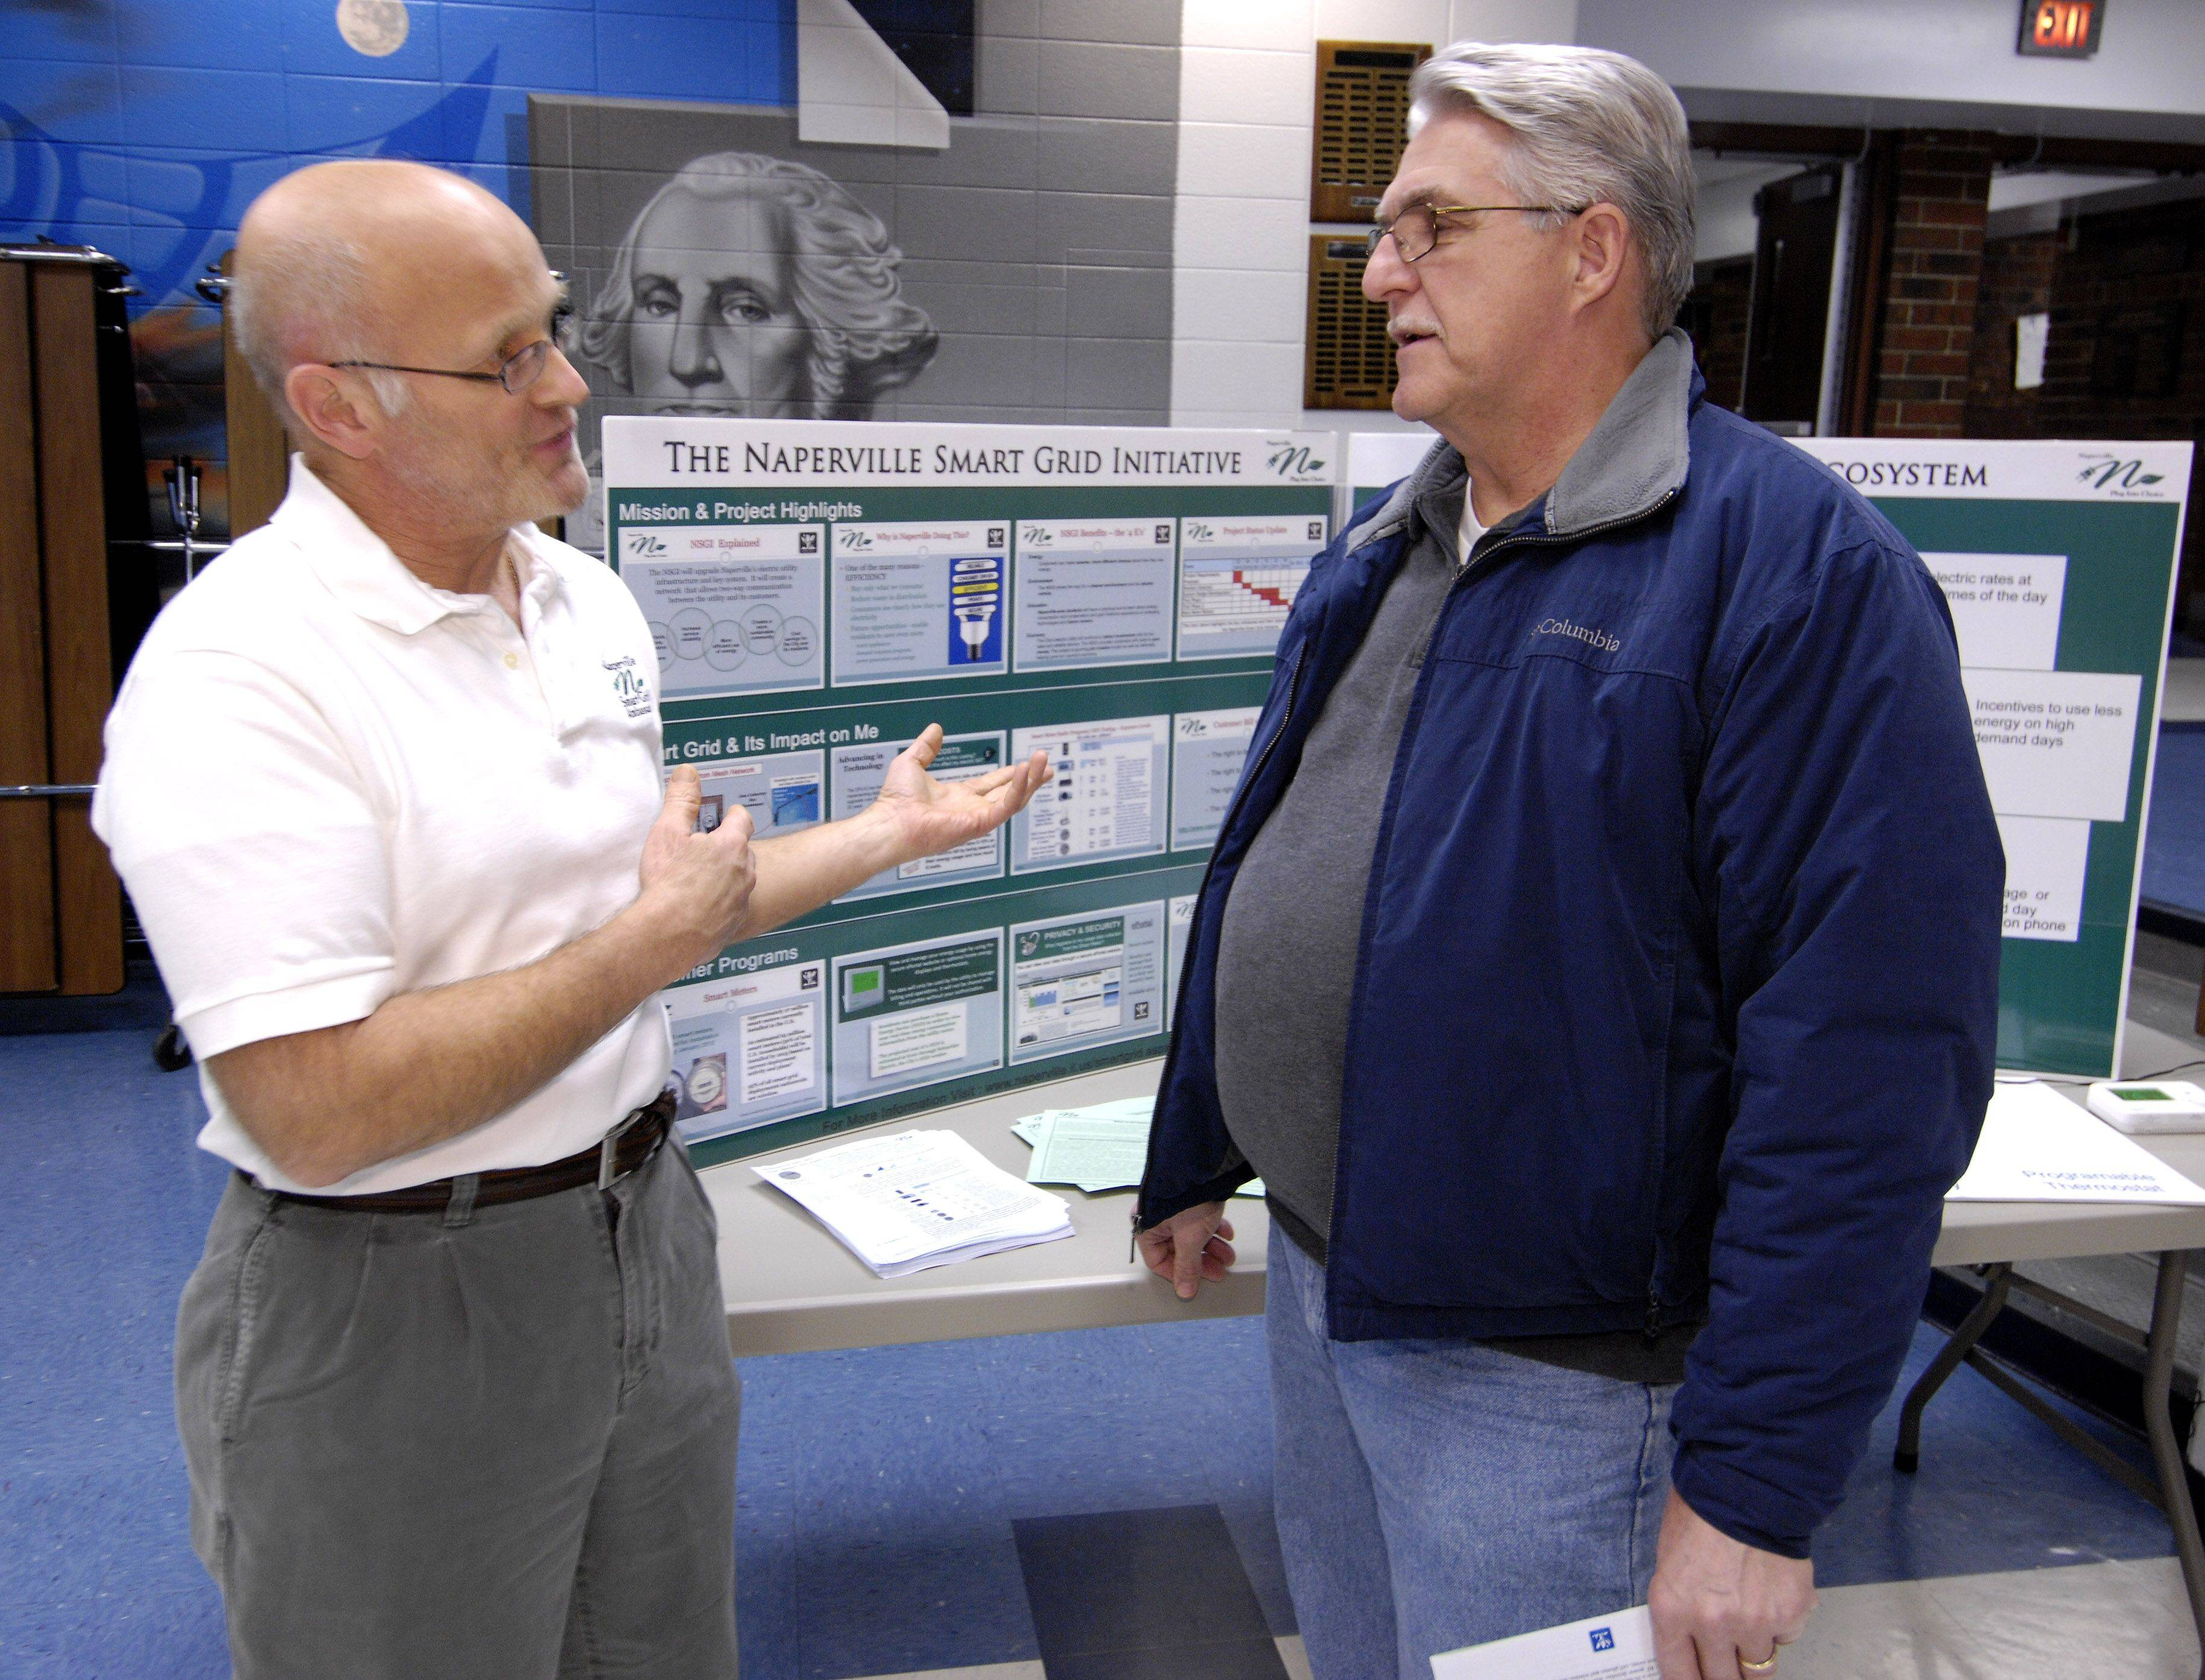 Smart Grid Ambassador Al Glodowski speaks with Naperville resident Tim Ory Wednesday during an open house at Washington Junior High, where Naperville residents could learn more about the Naperville Smart Grid Initiative (NSGI).